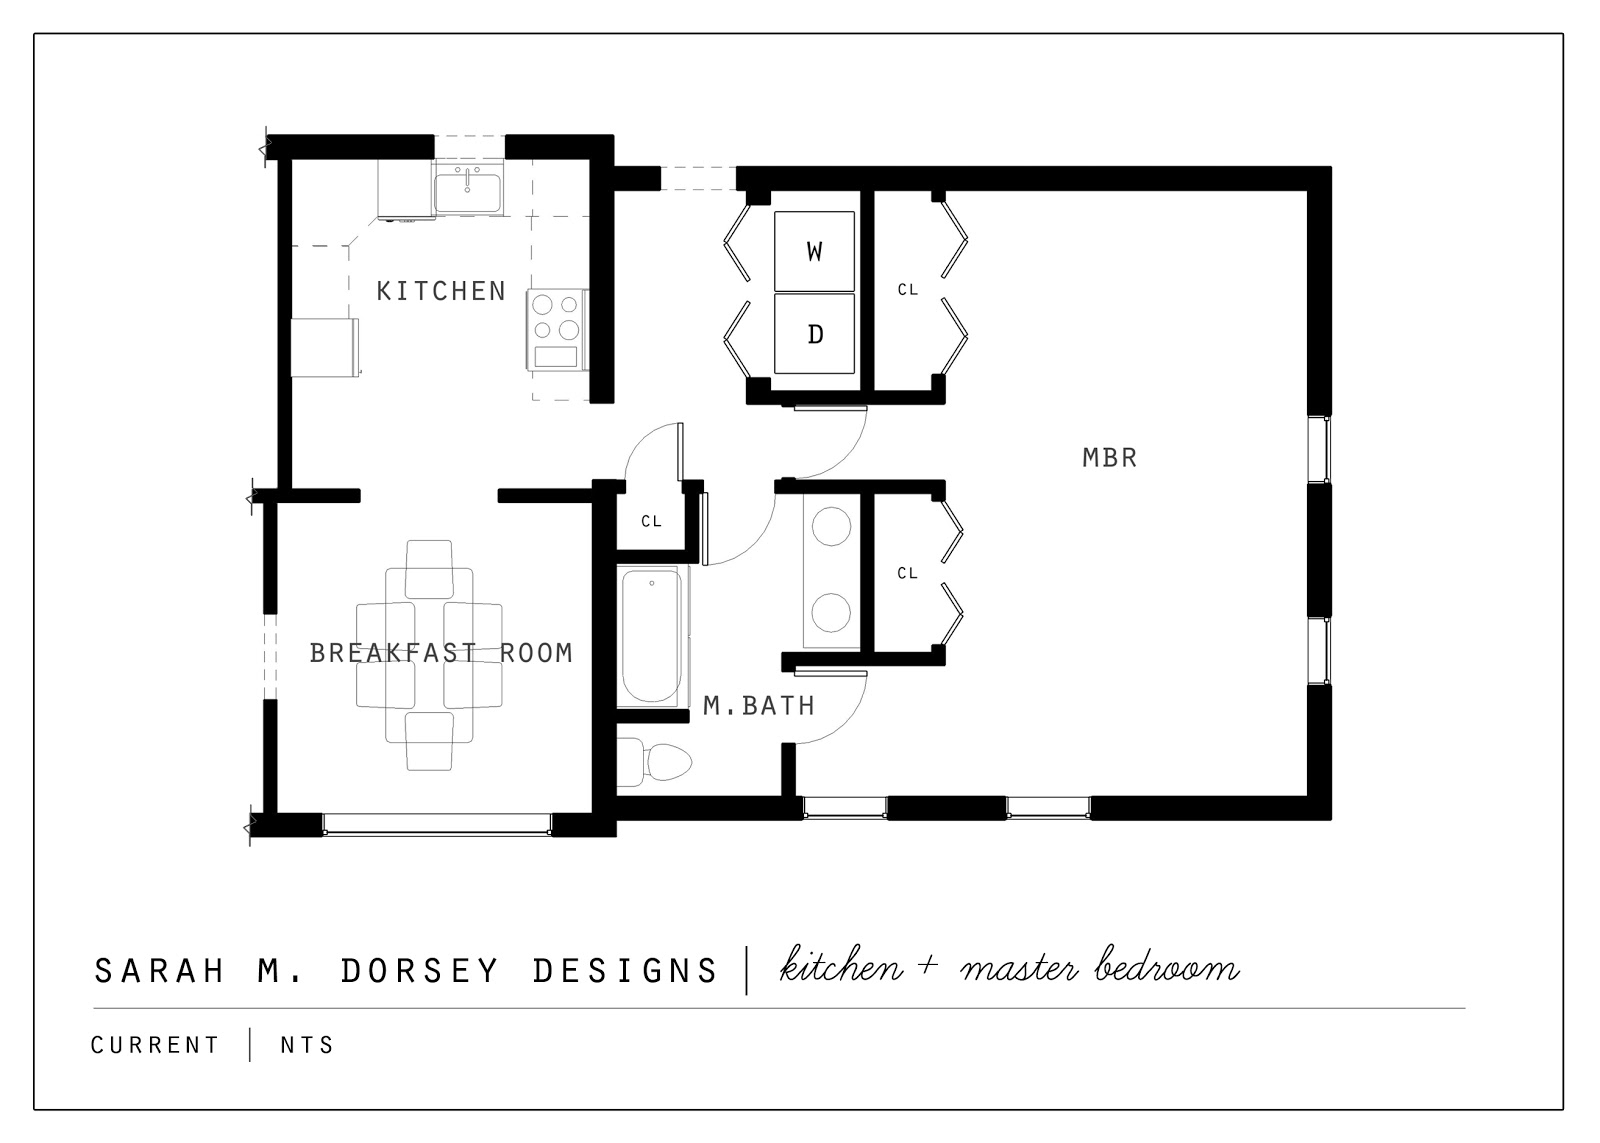 Sarah m dorsey designs proposed kitchen and master suite for Kitchen addition plans